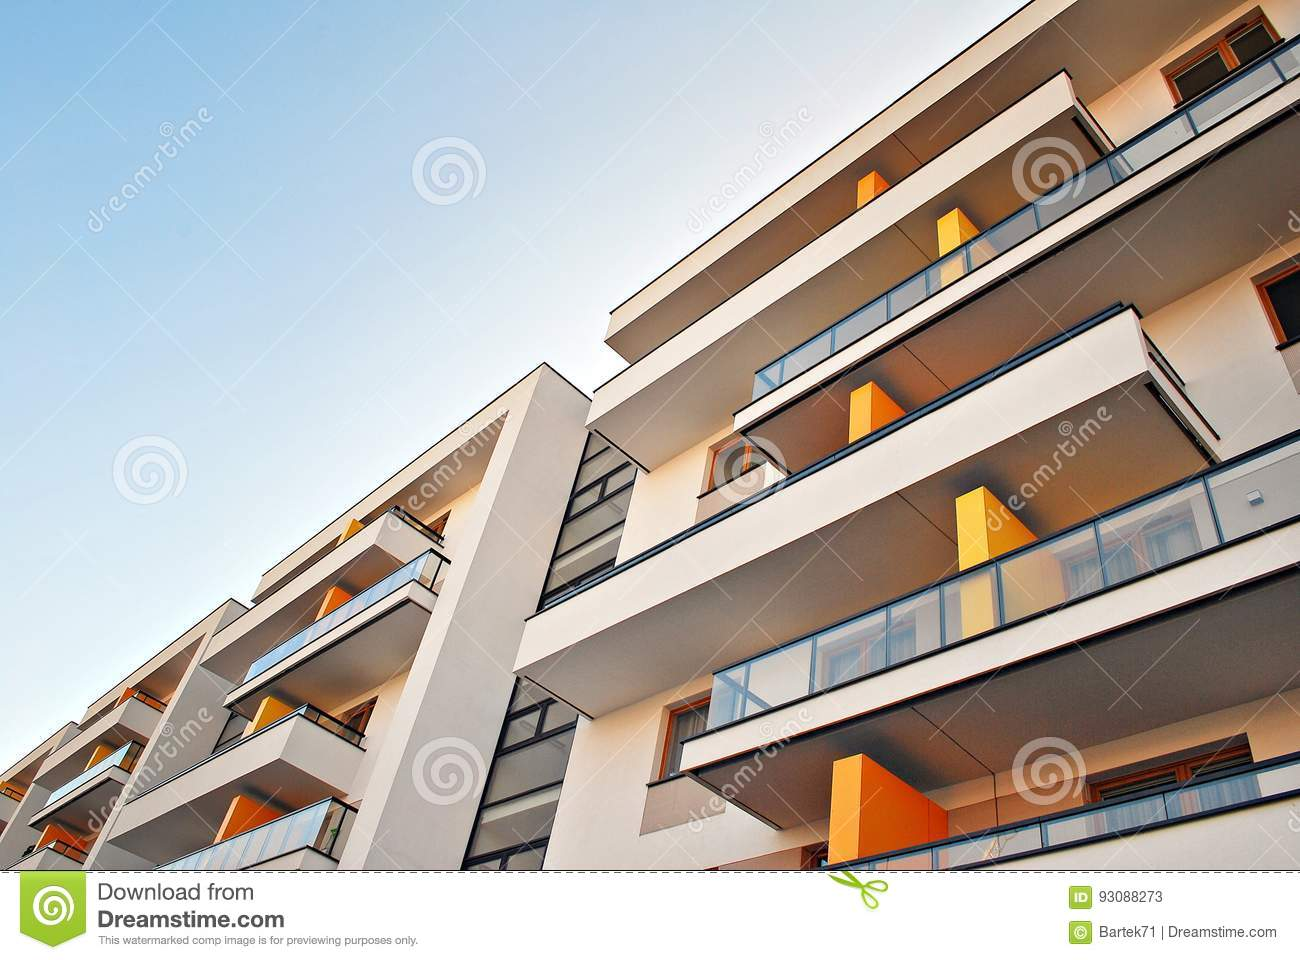 Modern apartment buildings exteriors. Facade of a modern apartment building.